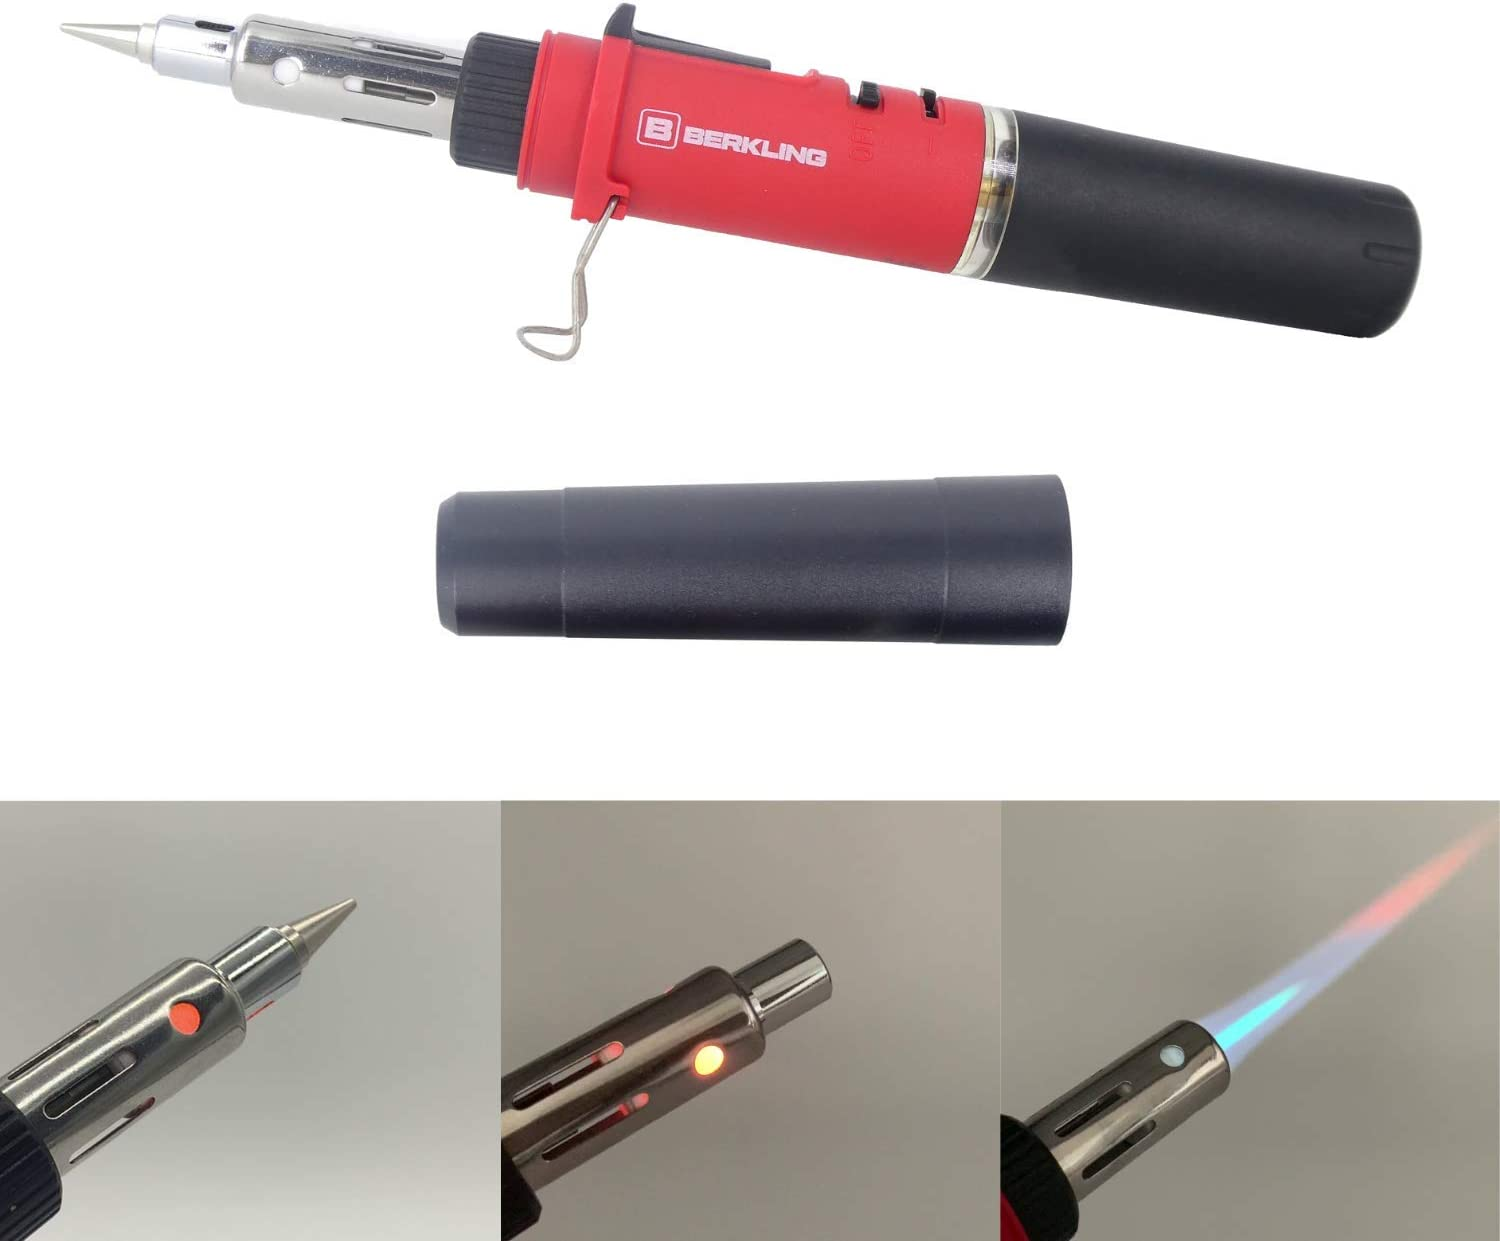 Berkling BSG-568 3-IN-1 Cordless Butane Soldering Iron | Heat Gun | Mini Torch - Self-Ignite, Rechargeable, Light Weight, Portable, Adjustable Flame For Automotive, Electronics, Home DIY, Computer